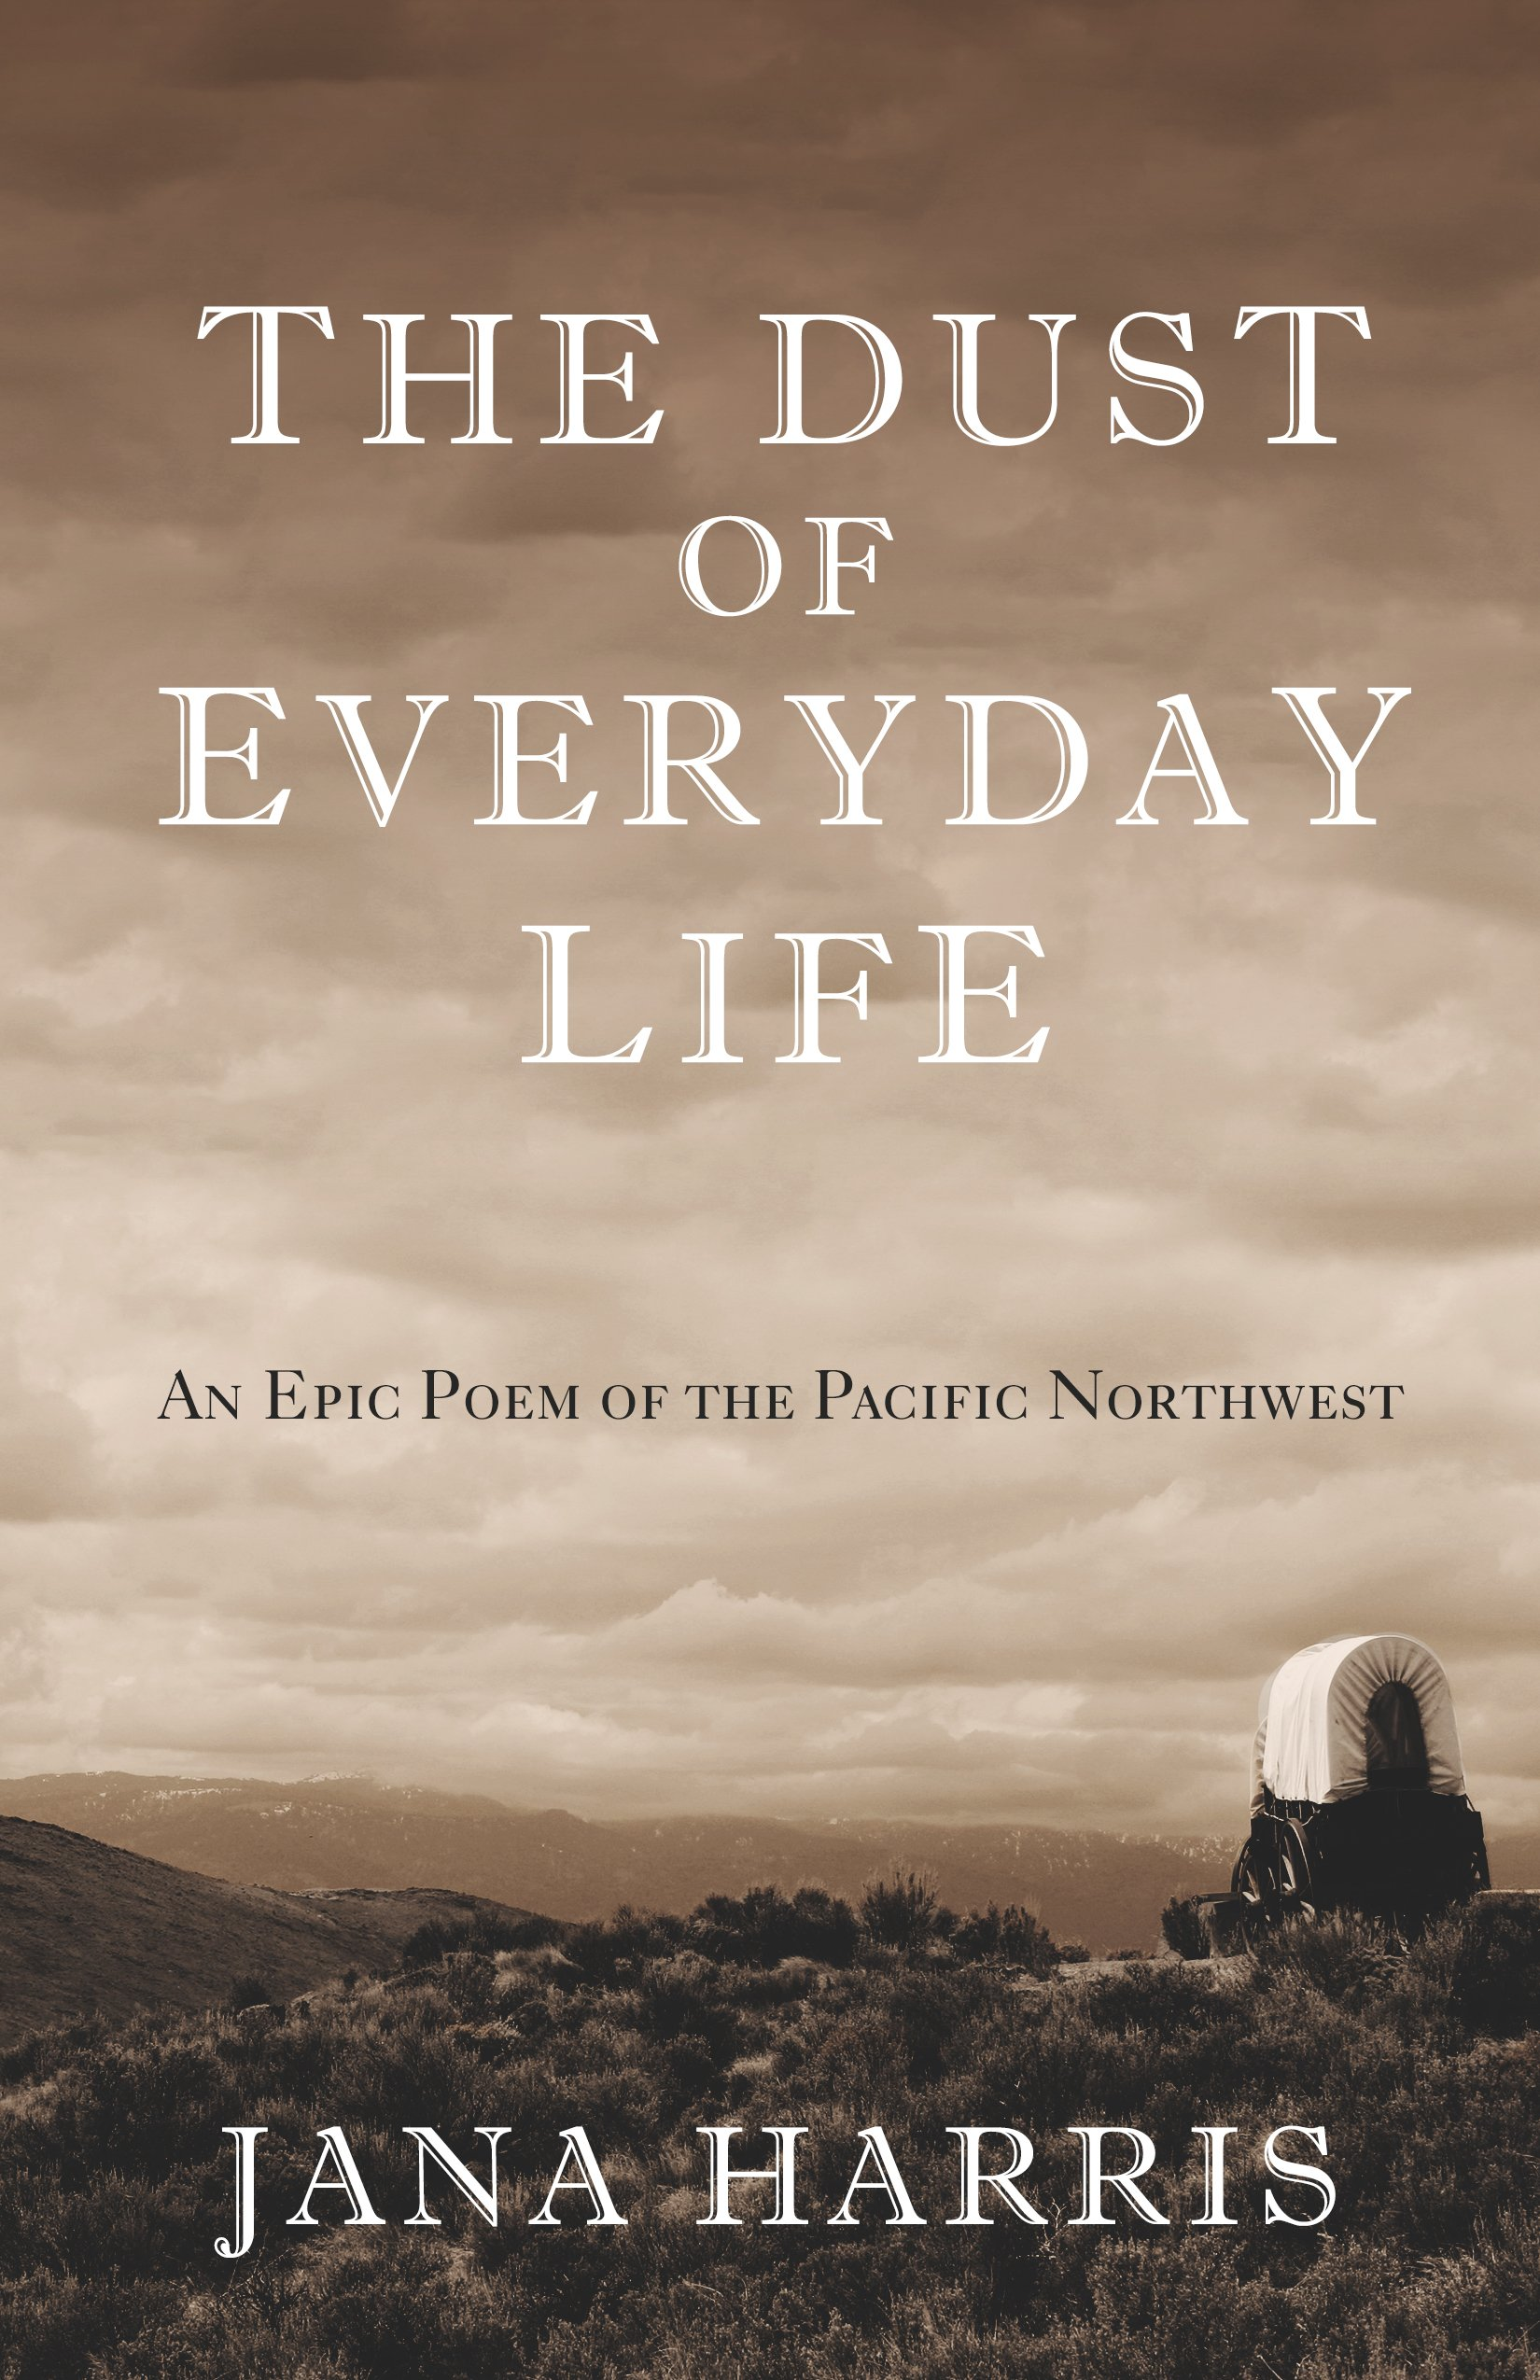 The Dust of Everyday Life: An Epic Poem of the Pacific Northwest PDF